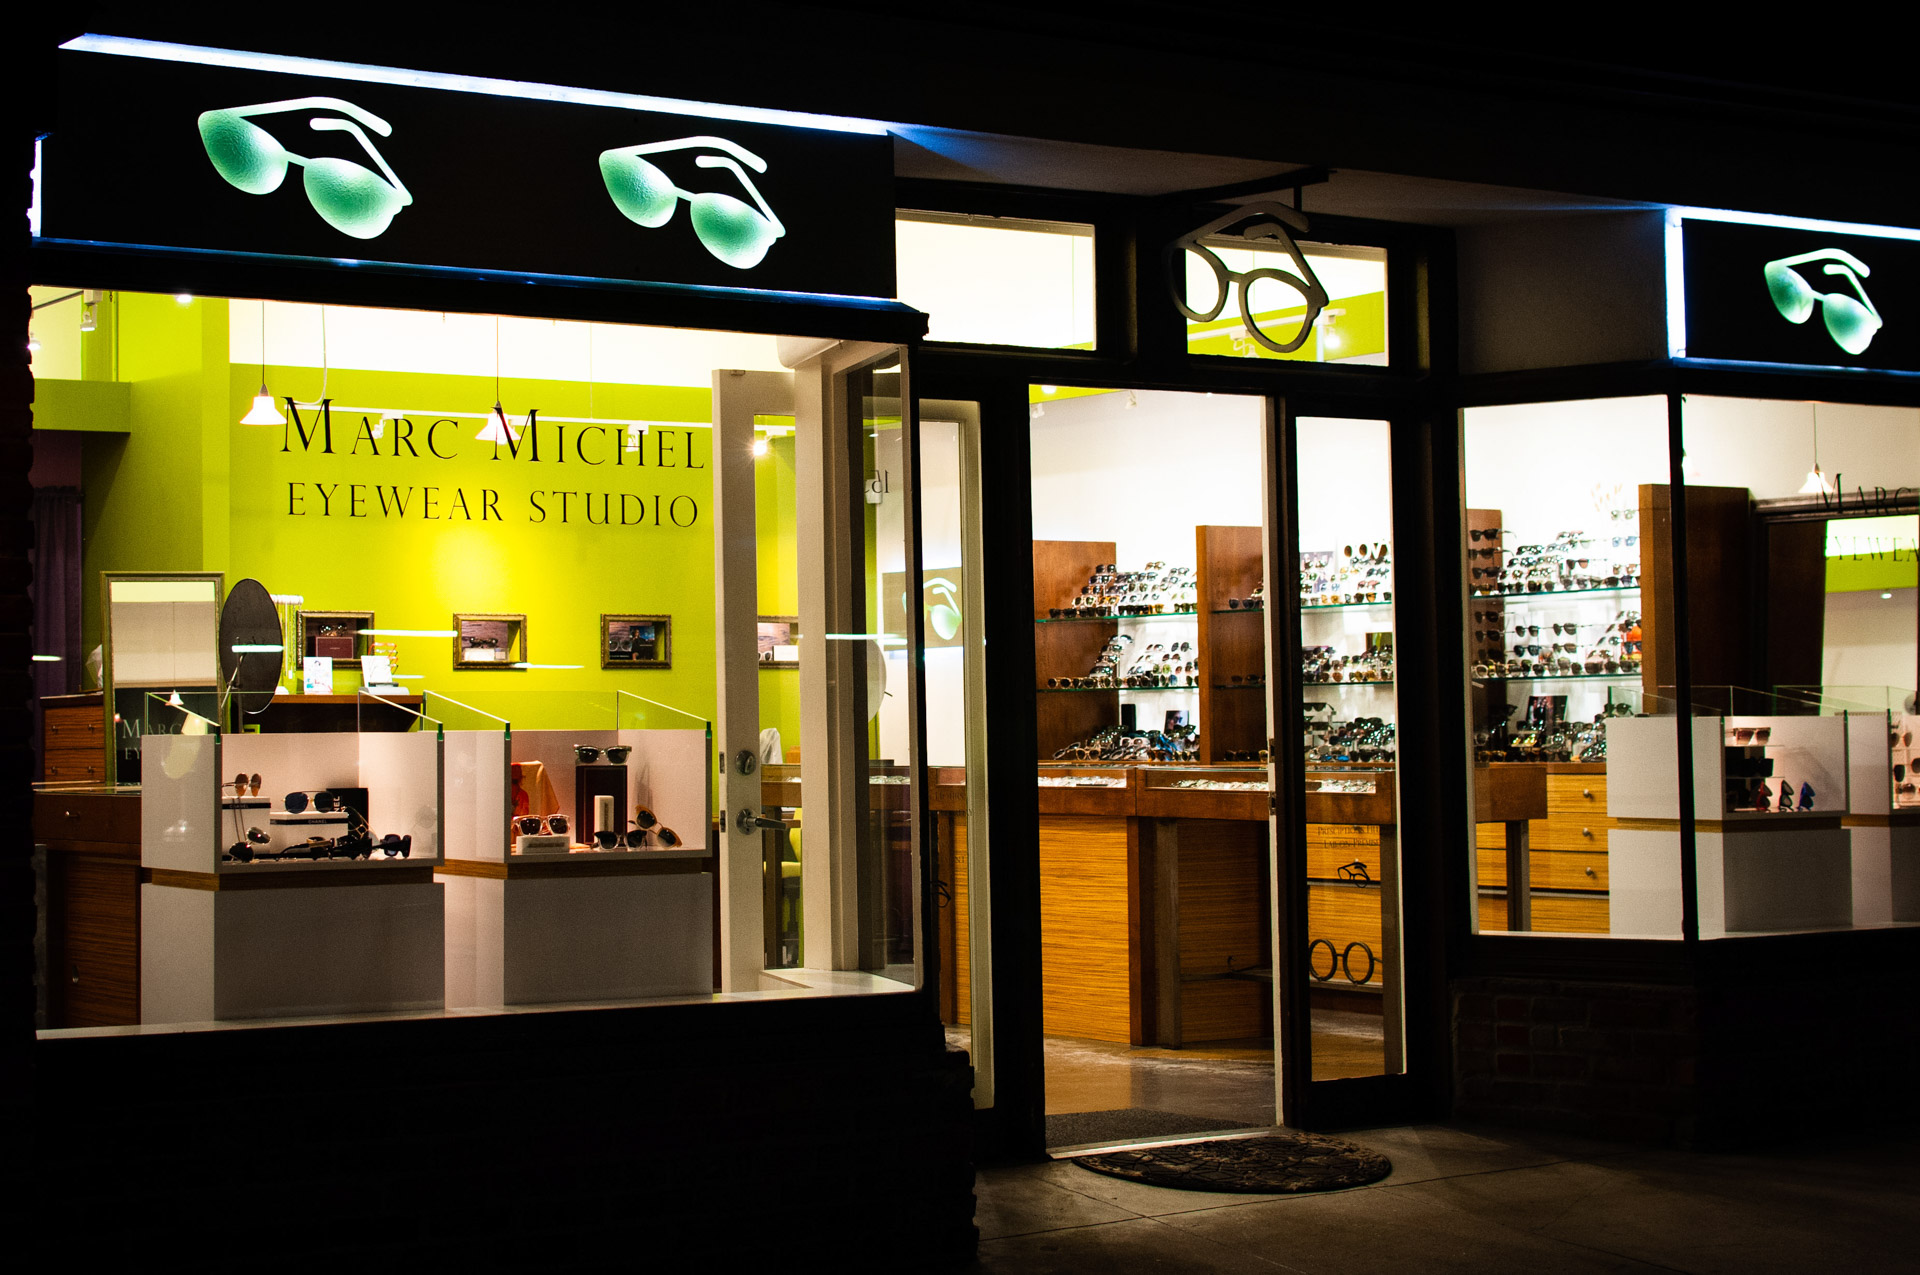 Marc Michel Eyewear store exterior night